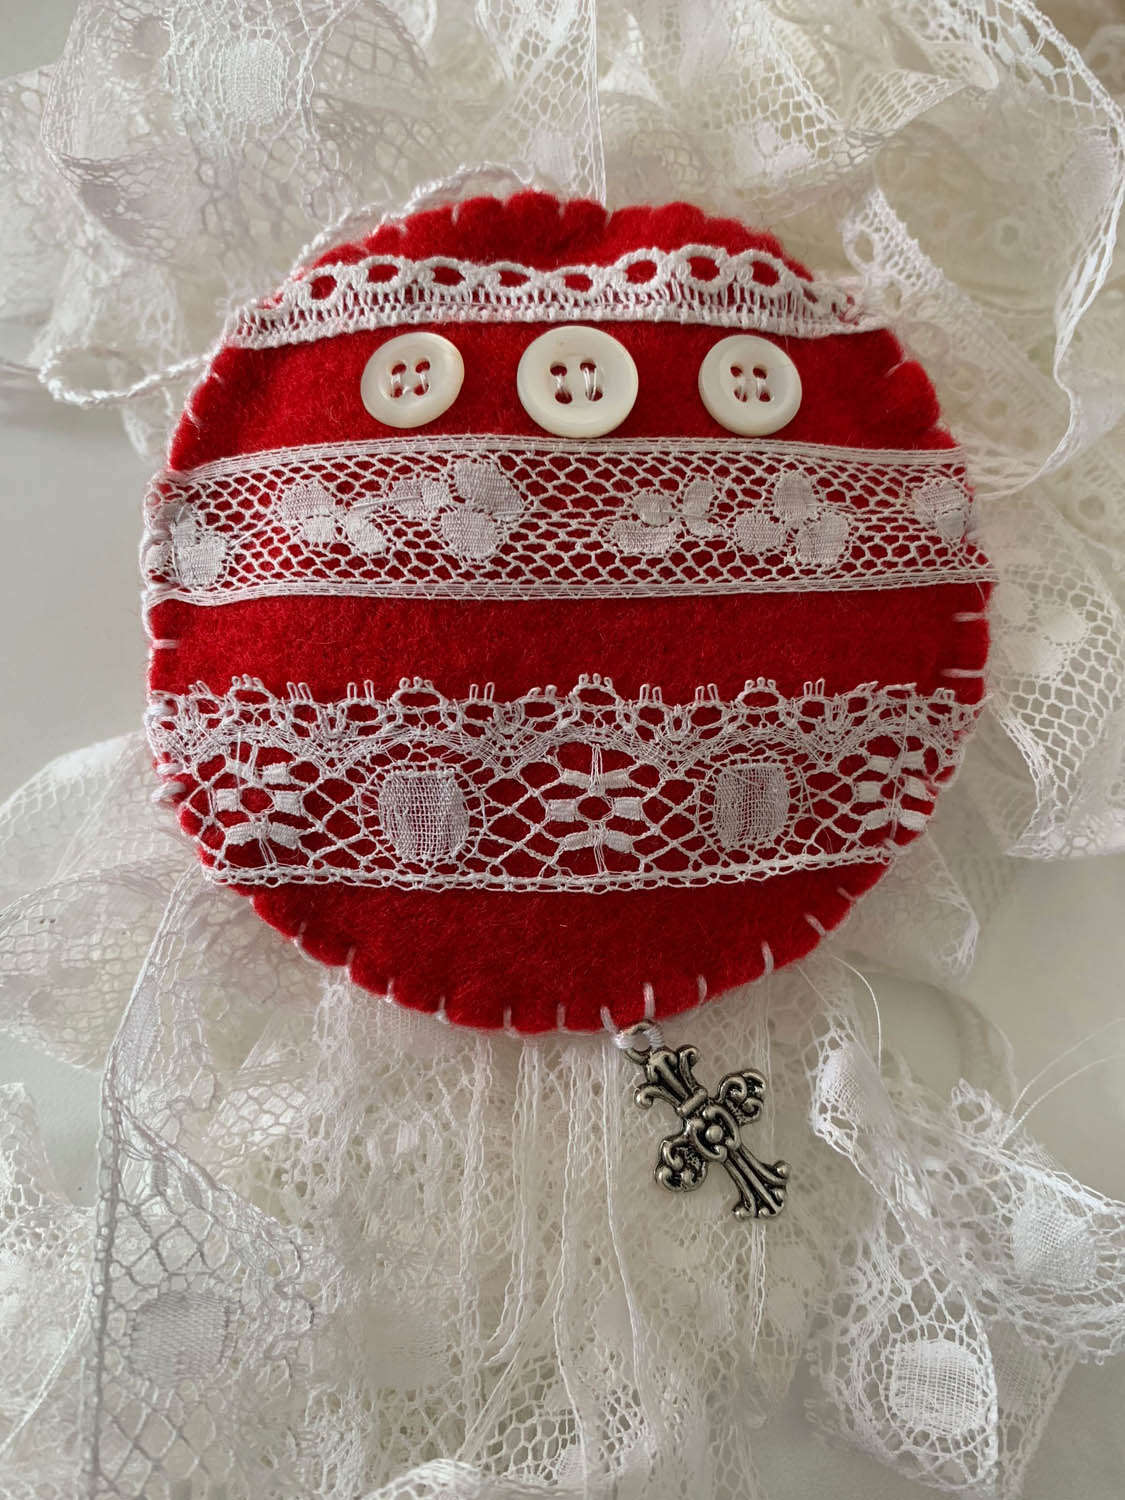 Finished hand made lace-embellished red felt Christmas ornament.